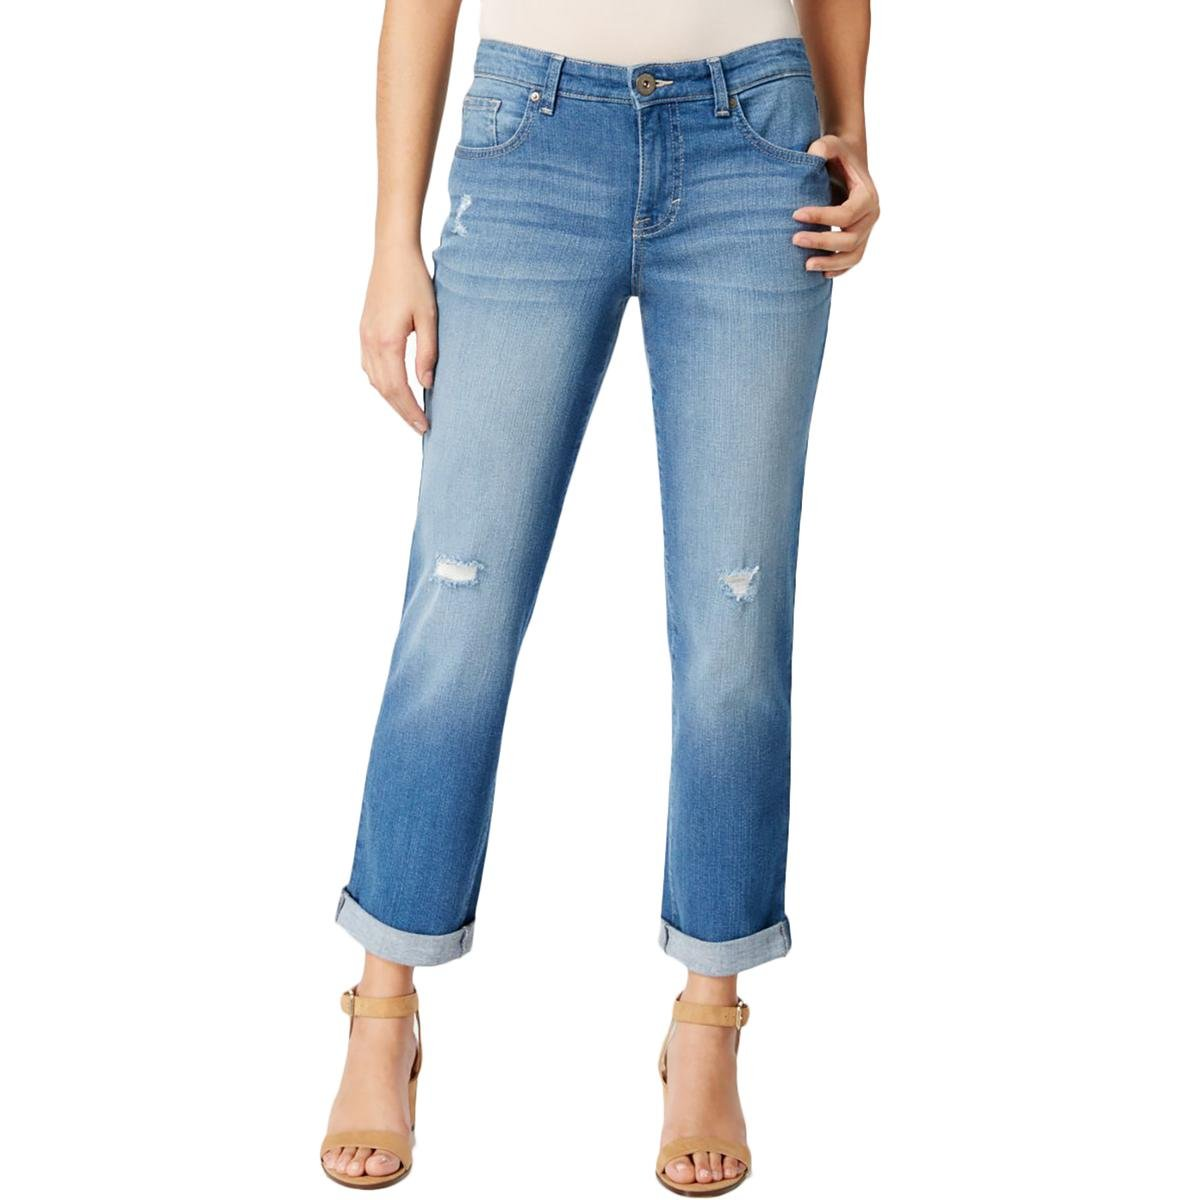 Style & Co. Womens Distressed Mid-Rise Boyfriend Jeans Blue 18